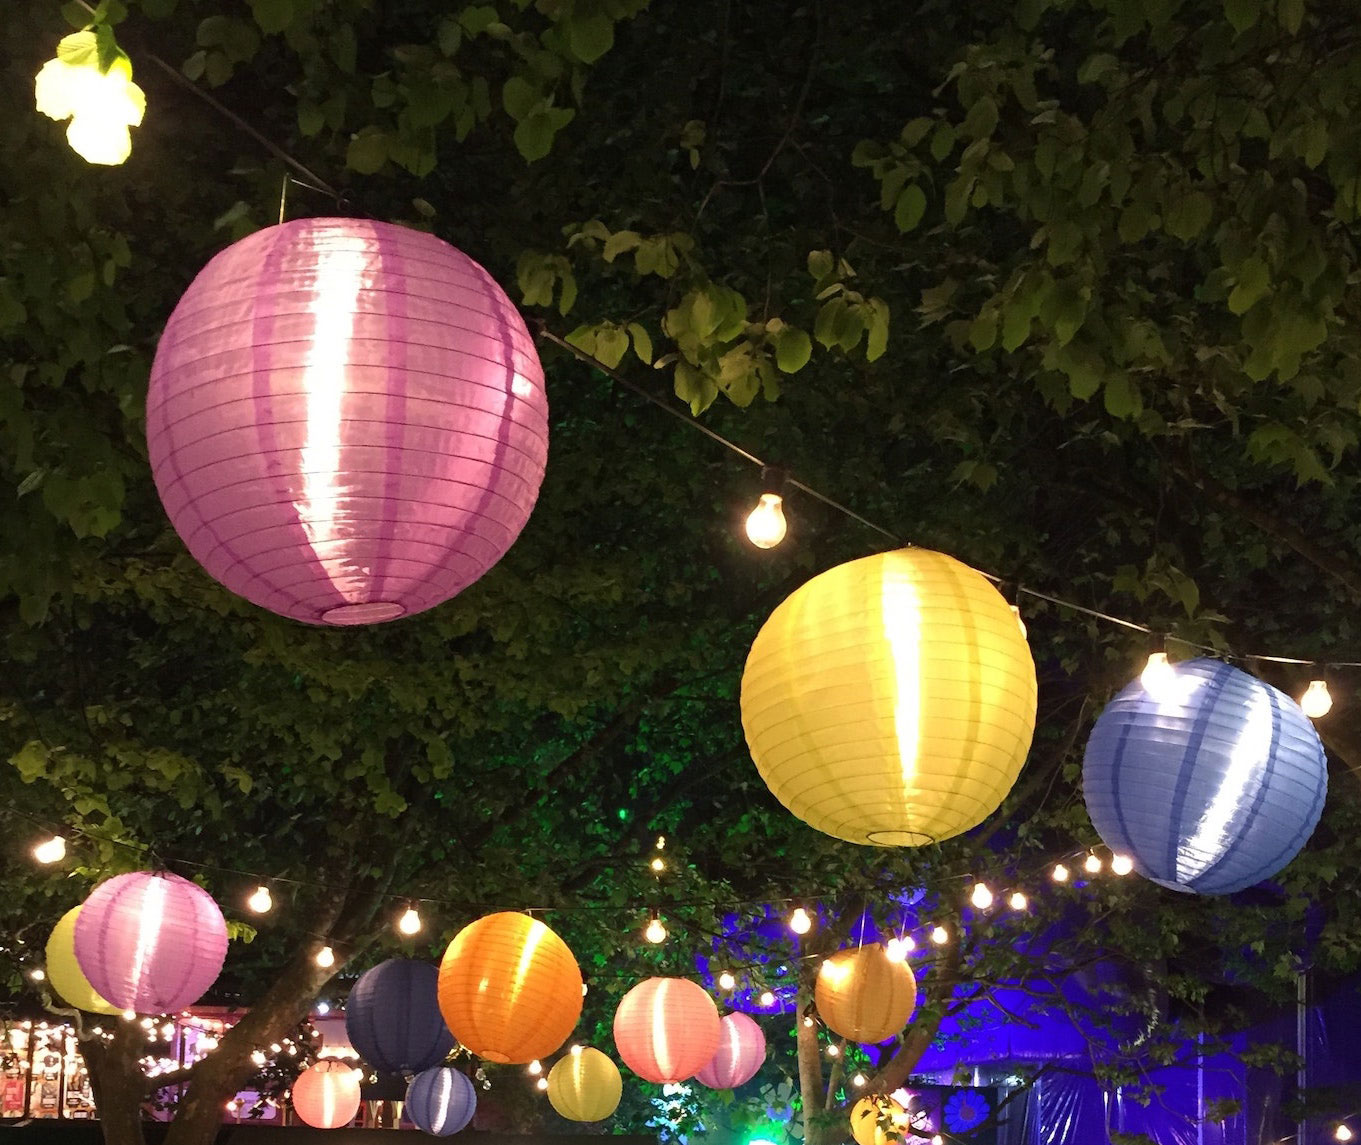 Taste of Twilight lanterns